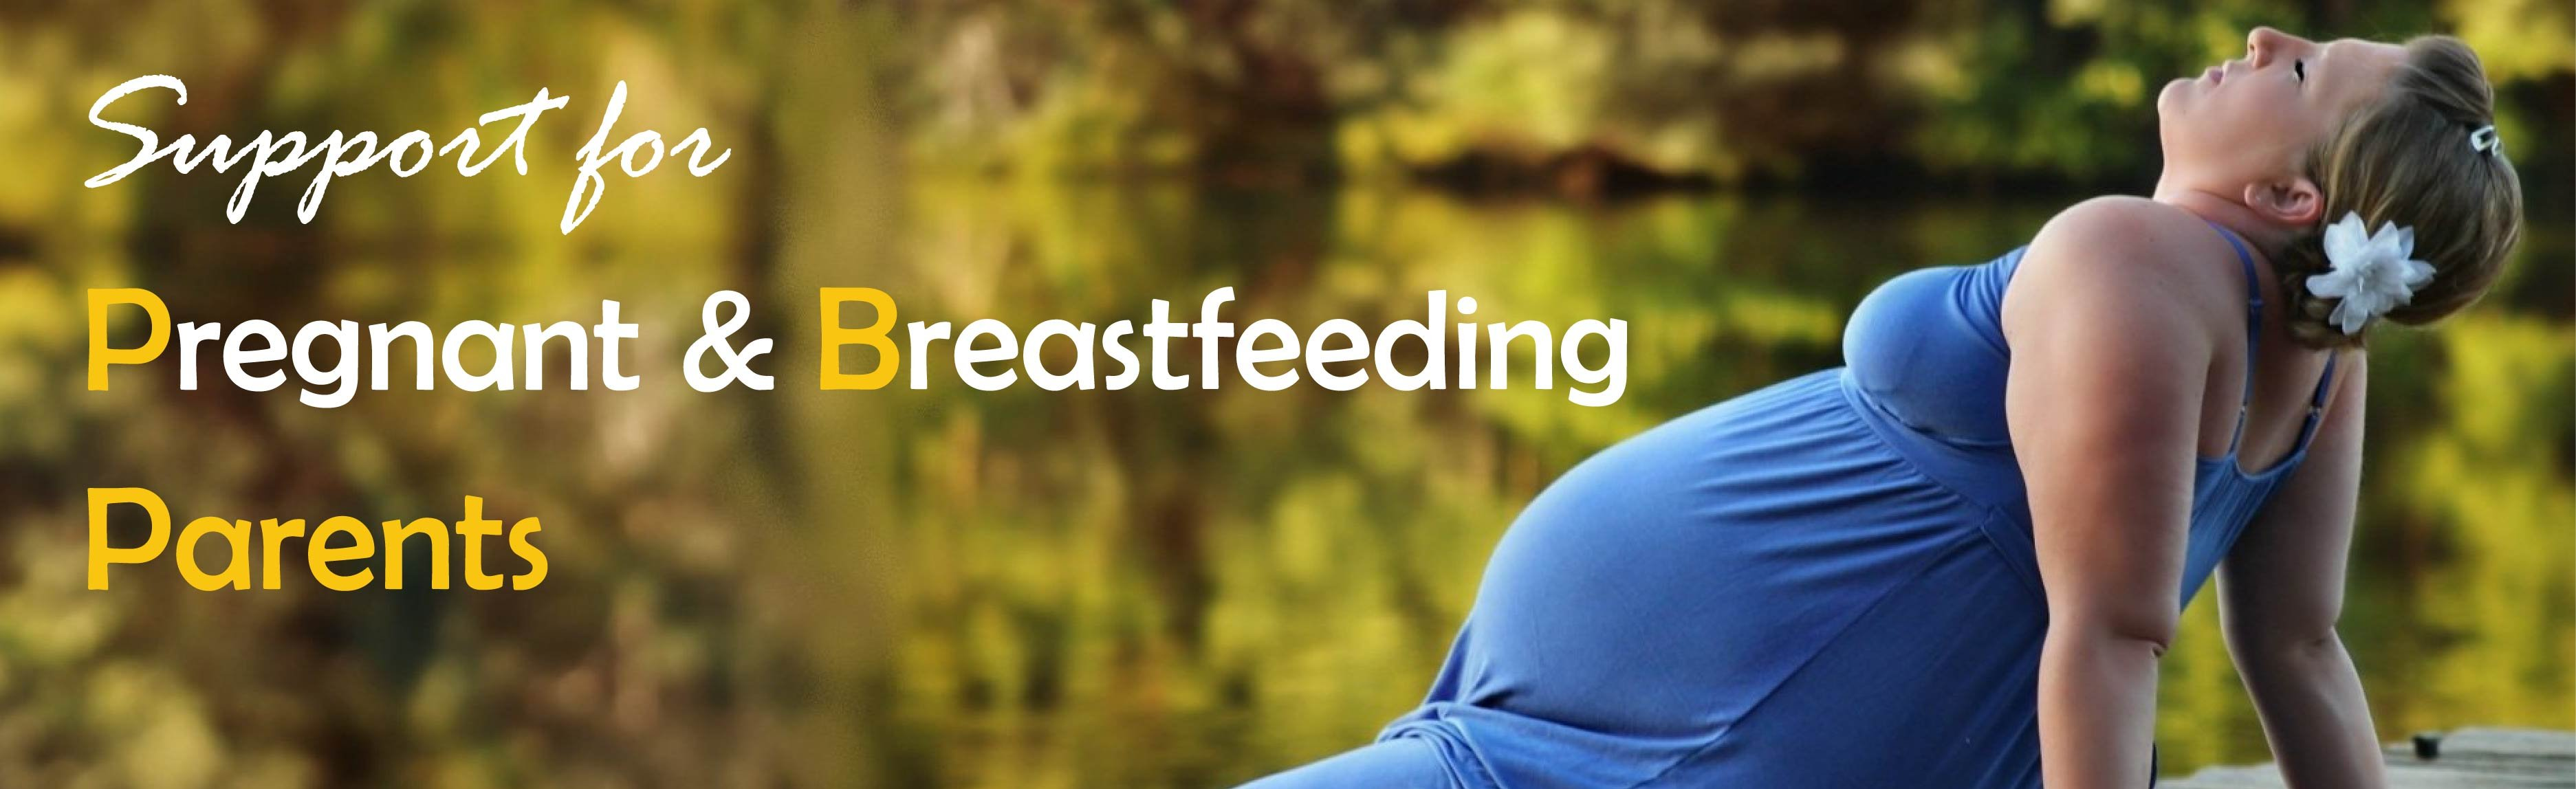 Support for Pregnant & Breastfeeding Mothers